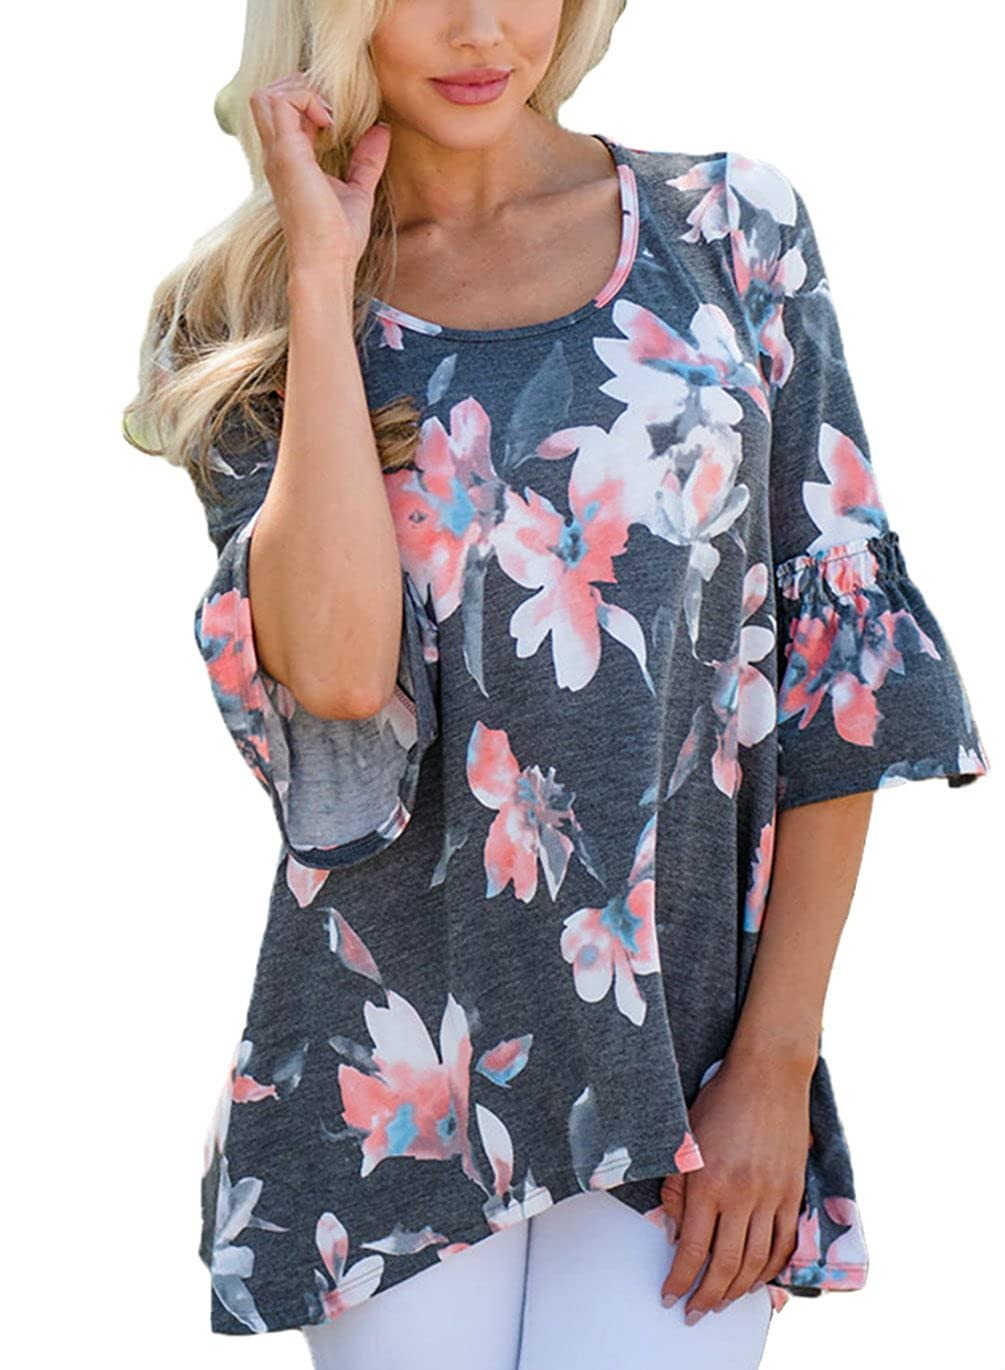 Charcoal HUUSA Womens Summer Casual Floral 3 4 Round Neck Ruffle Sleeve Loose Blouse Top